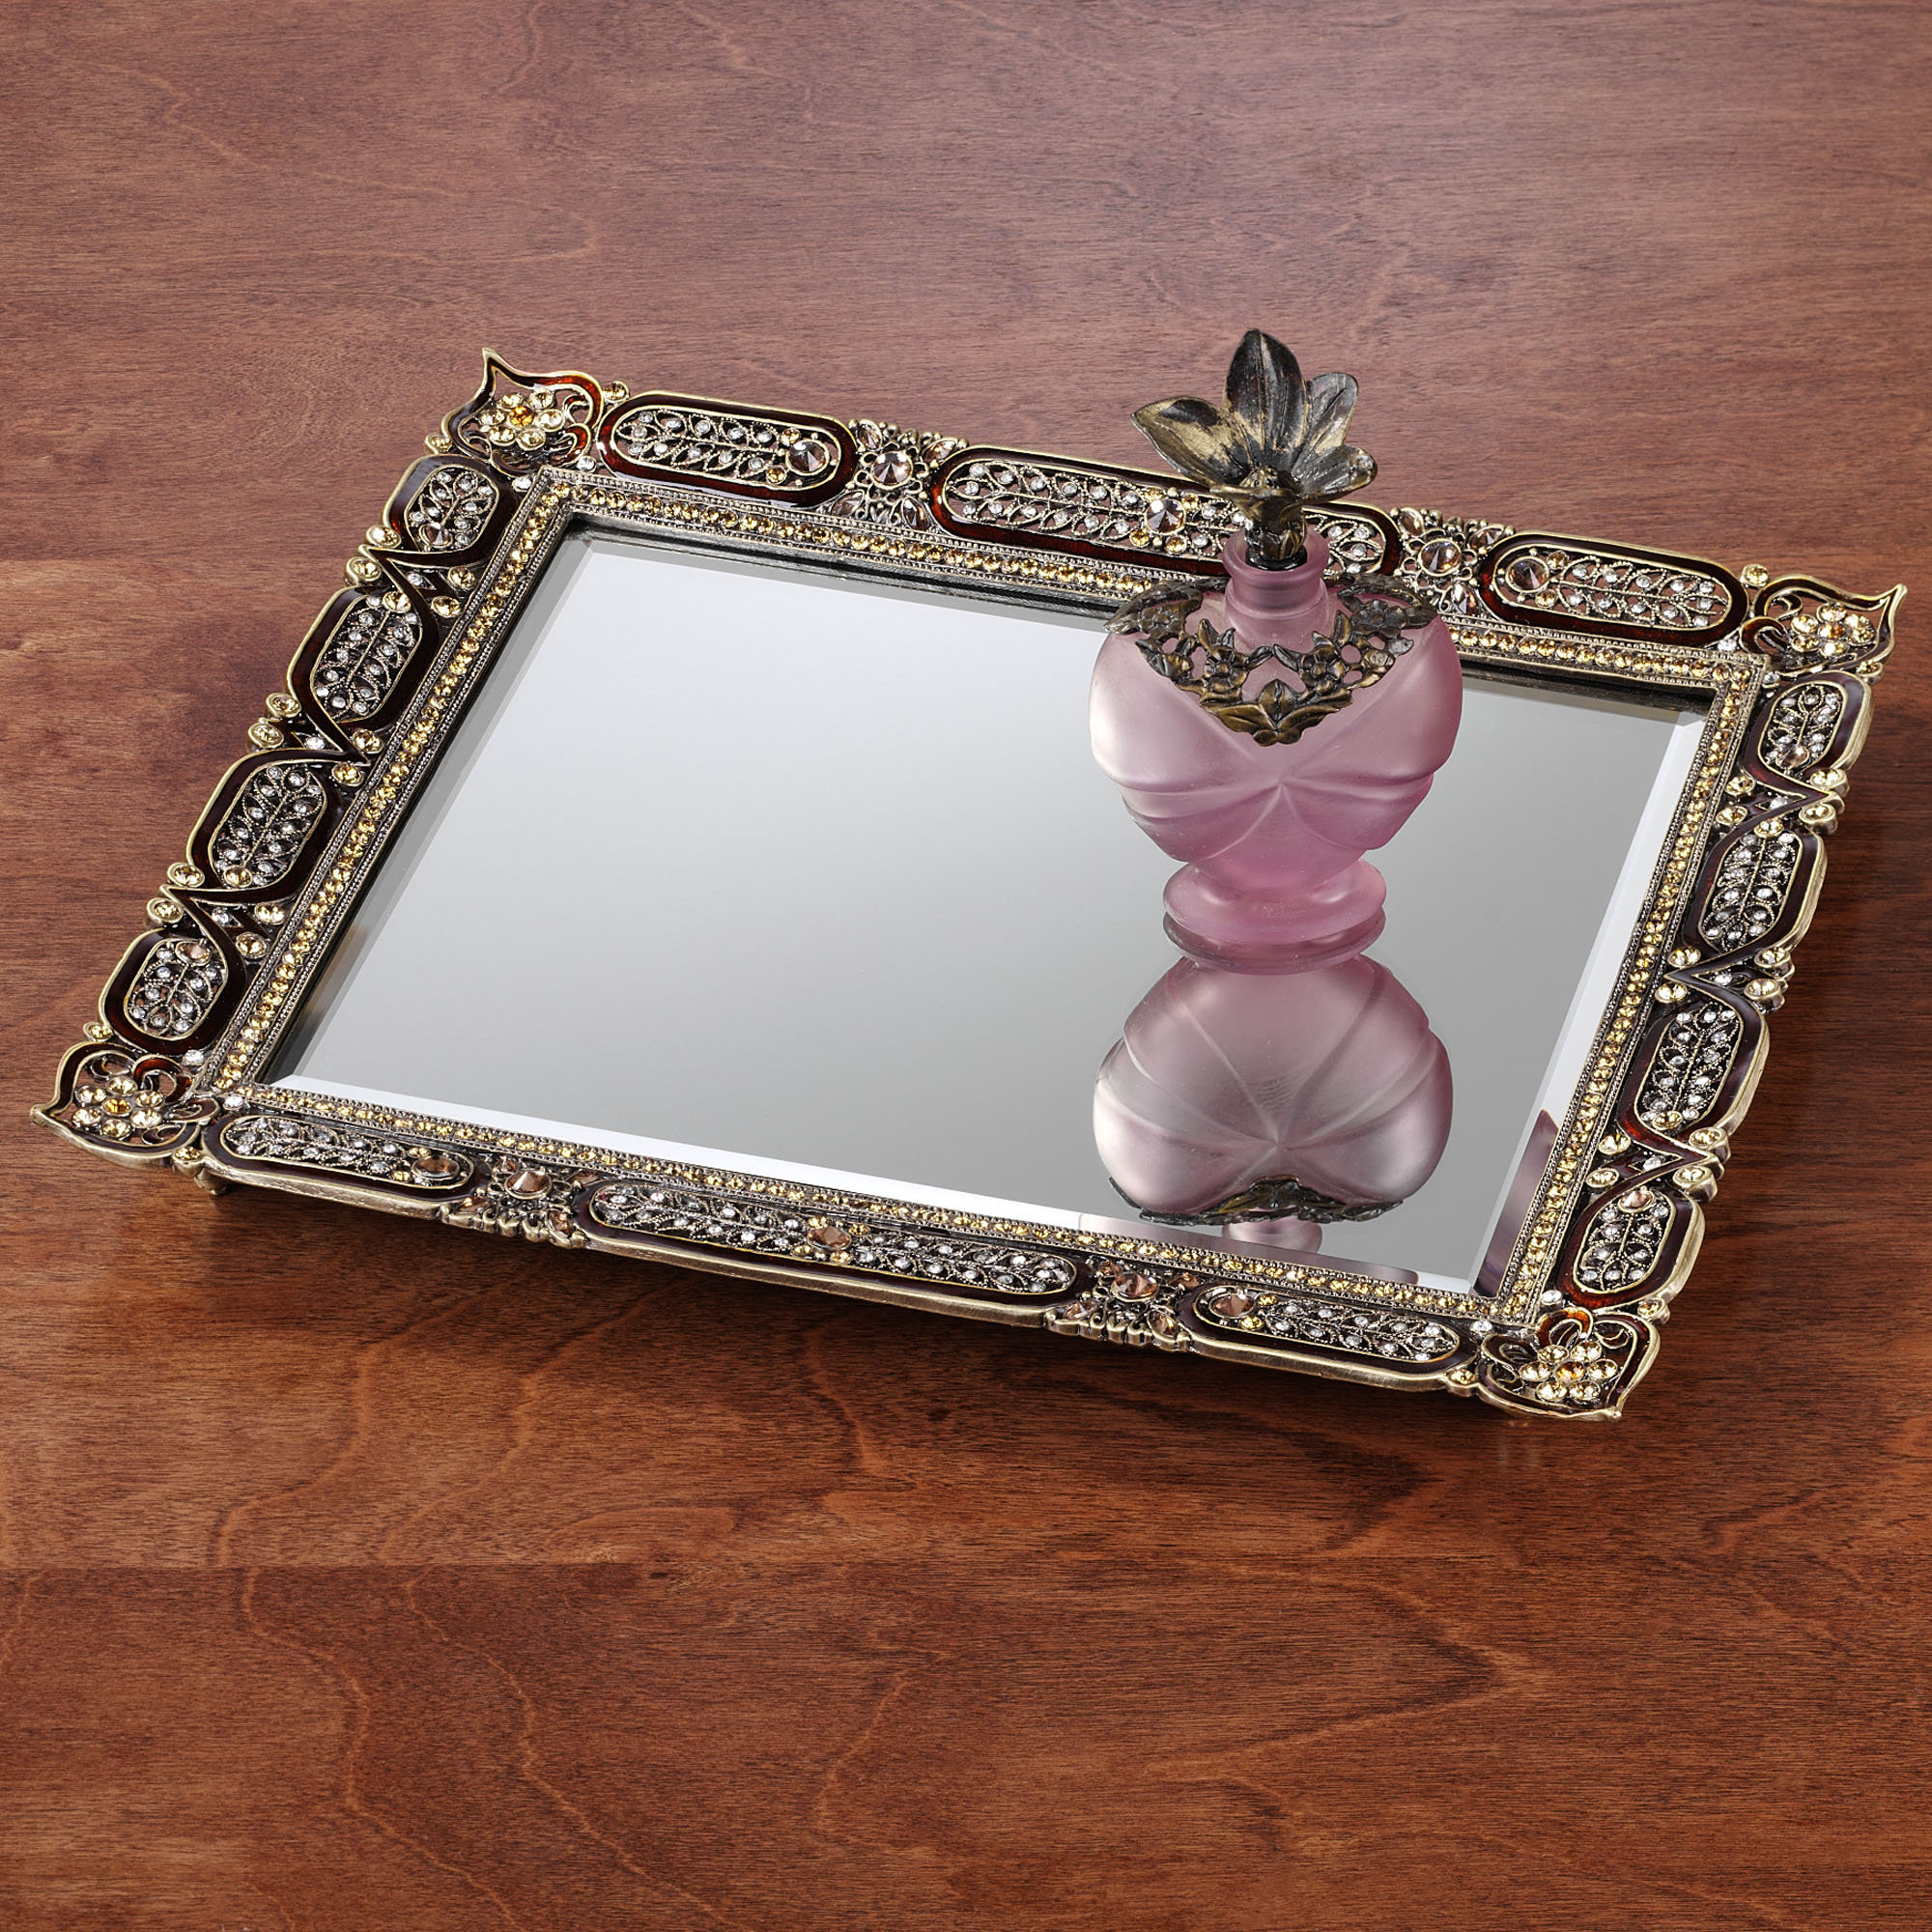 Astounding mirrored vanity tray